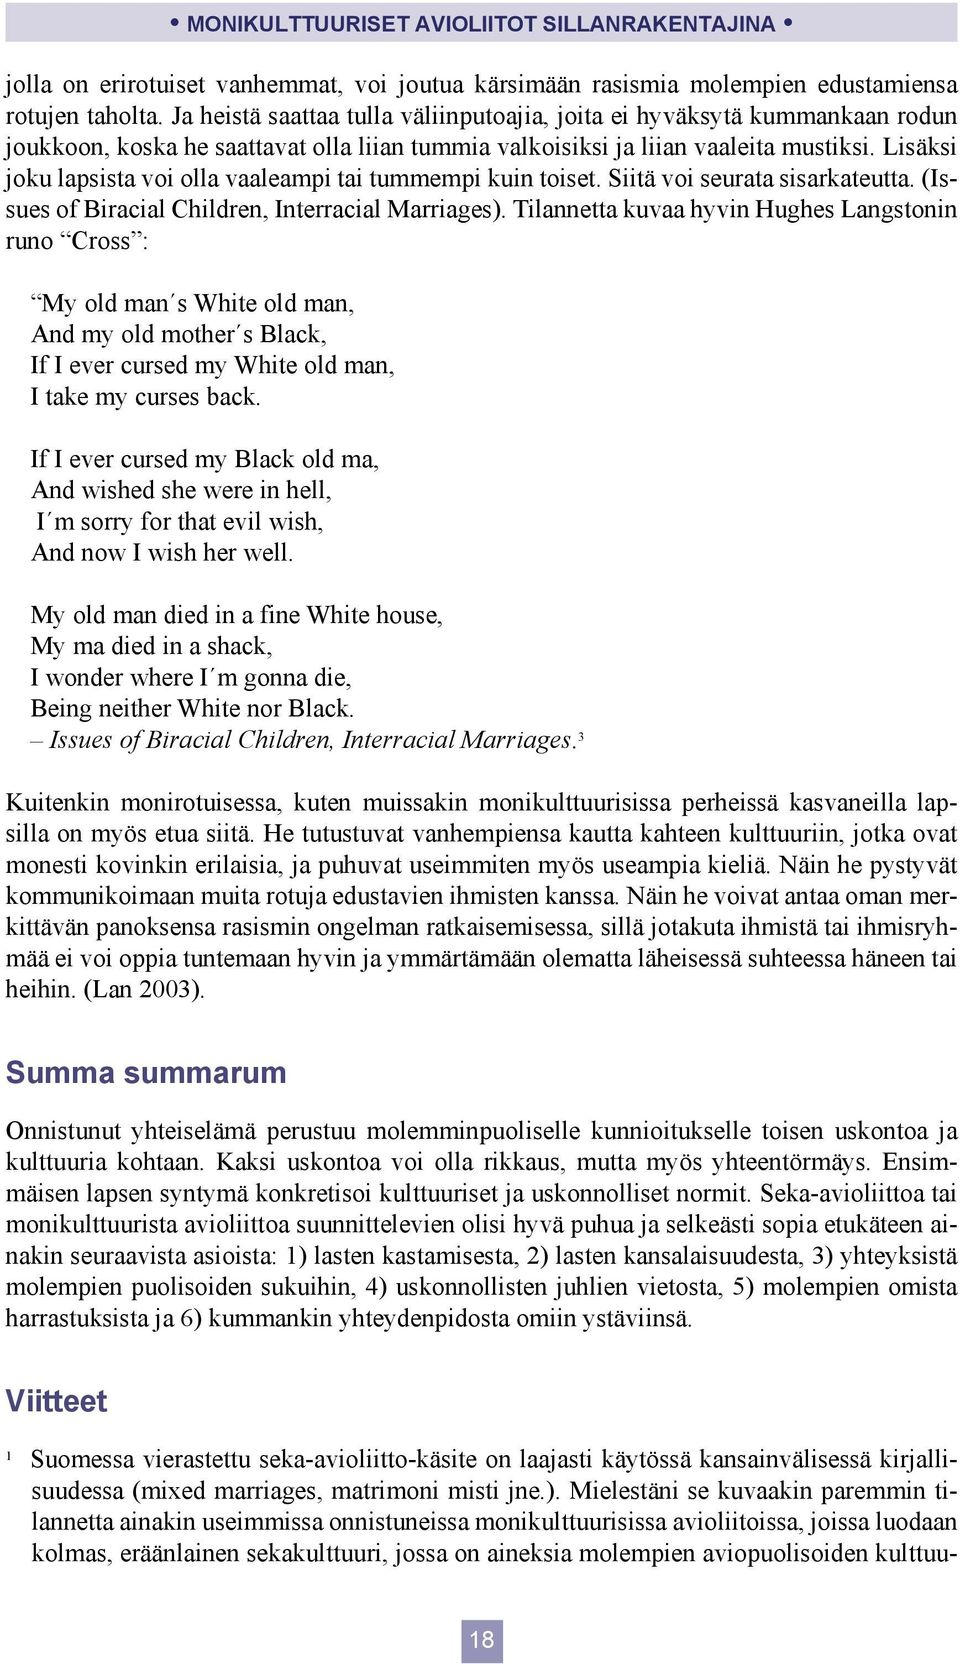 Lisäksi joku lapsista voi olla vaaleampi tai tummempi kuin toiset. Siitä voi seurata sisarkateutta. (Issues of Biracial Children, Interracial Marriages).